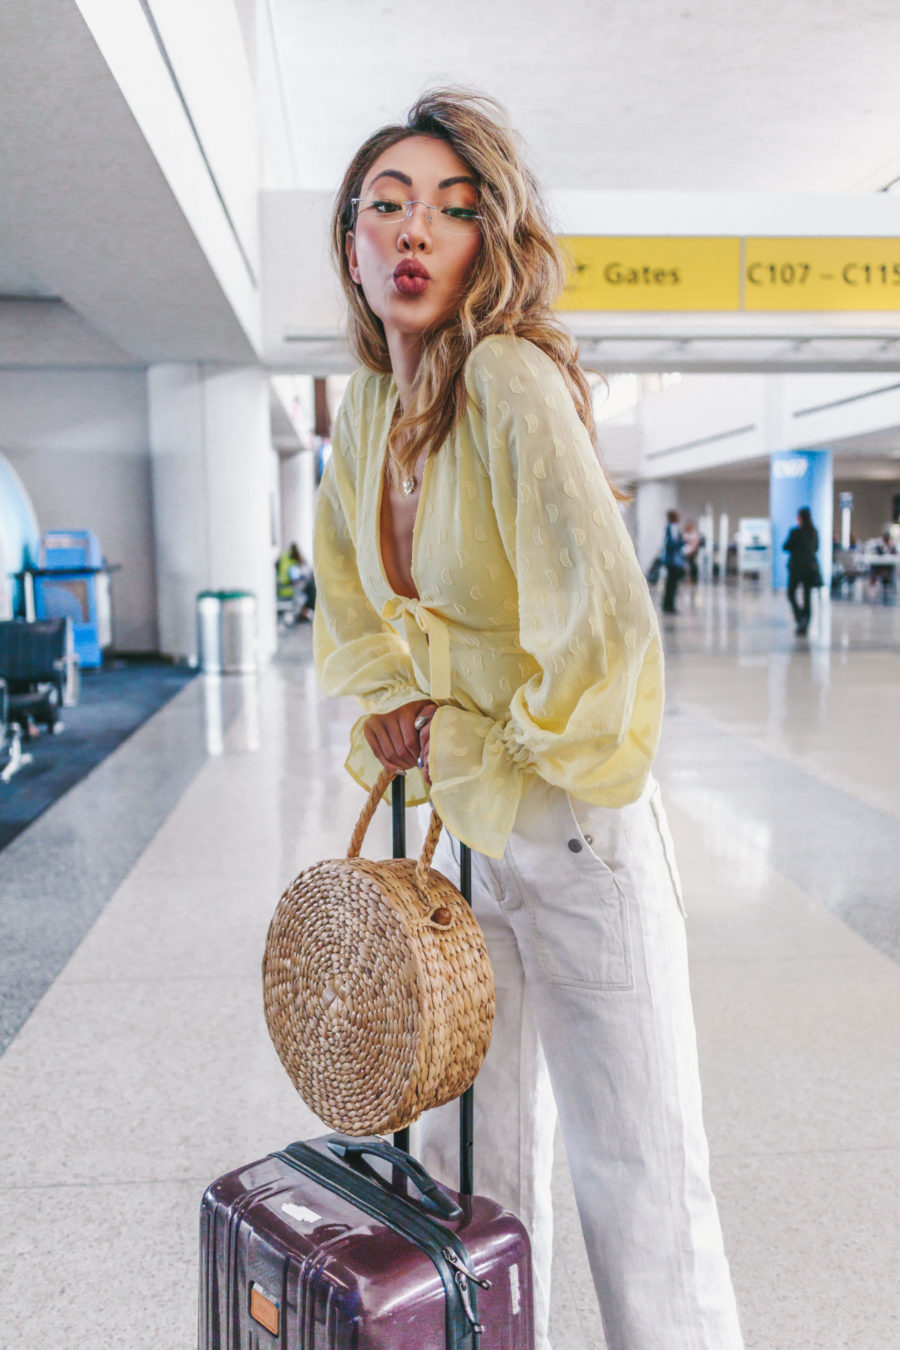 jessica wang wearing a yellow keyhole blouse with white jeans at the airport while sharing her travel essential items // Jessica Wang - Notjessfashion.com